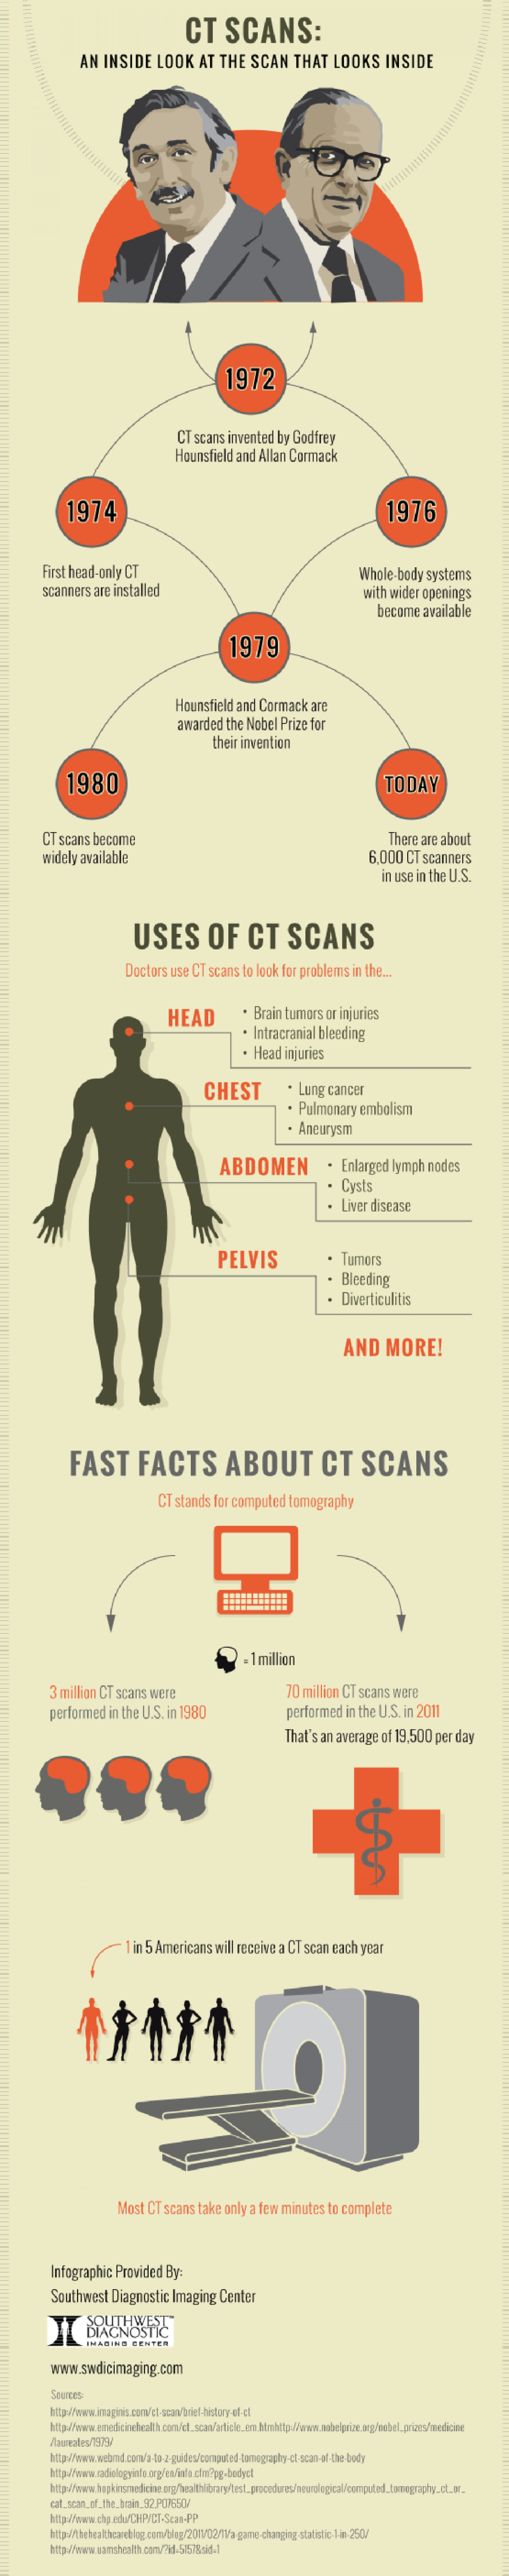 CT Scans: An Inside Look at the Scan that Looks Inside  Infographic